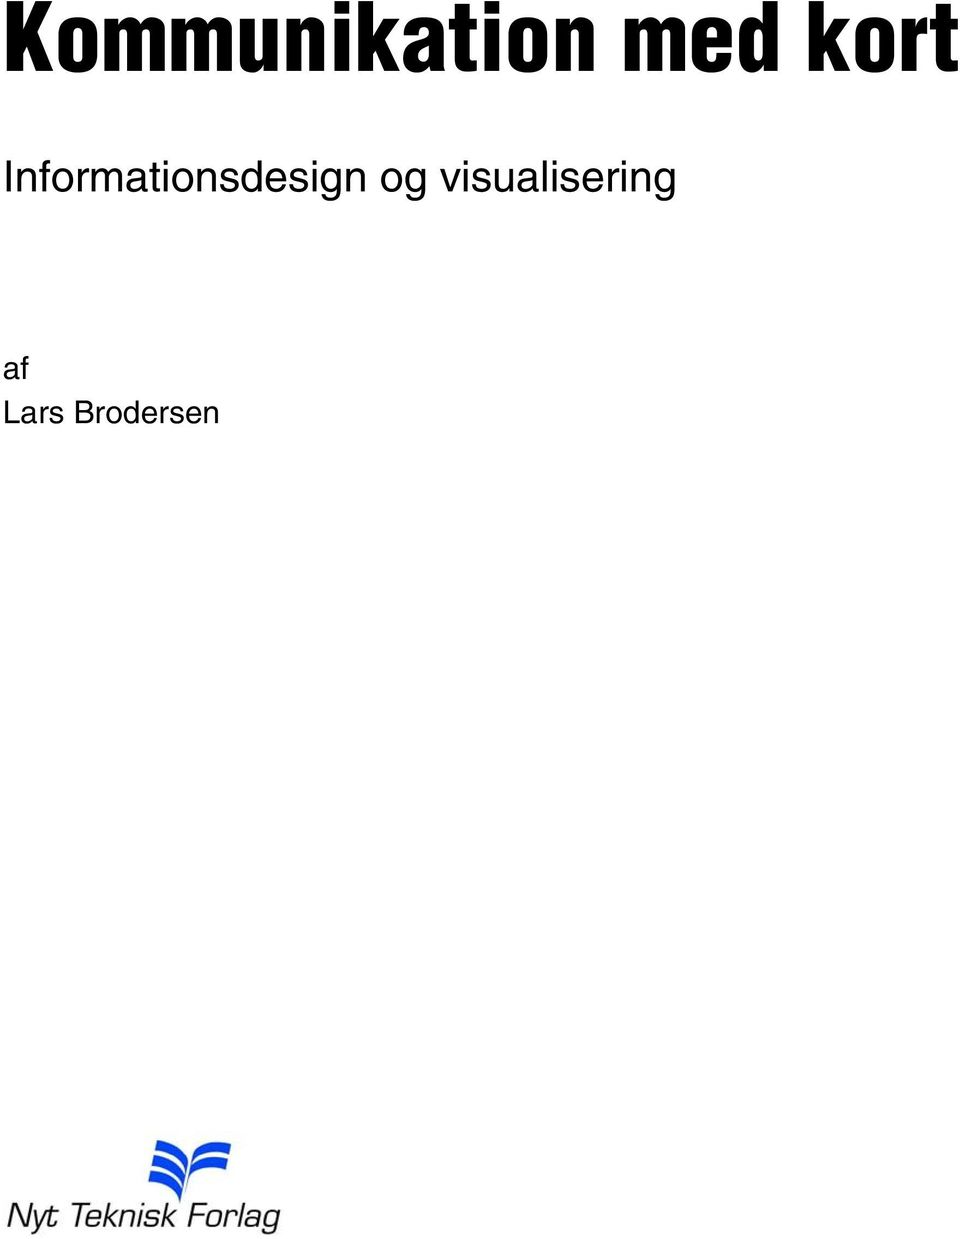 Informationsdesign